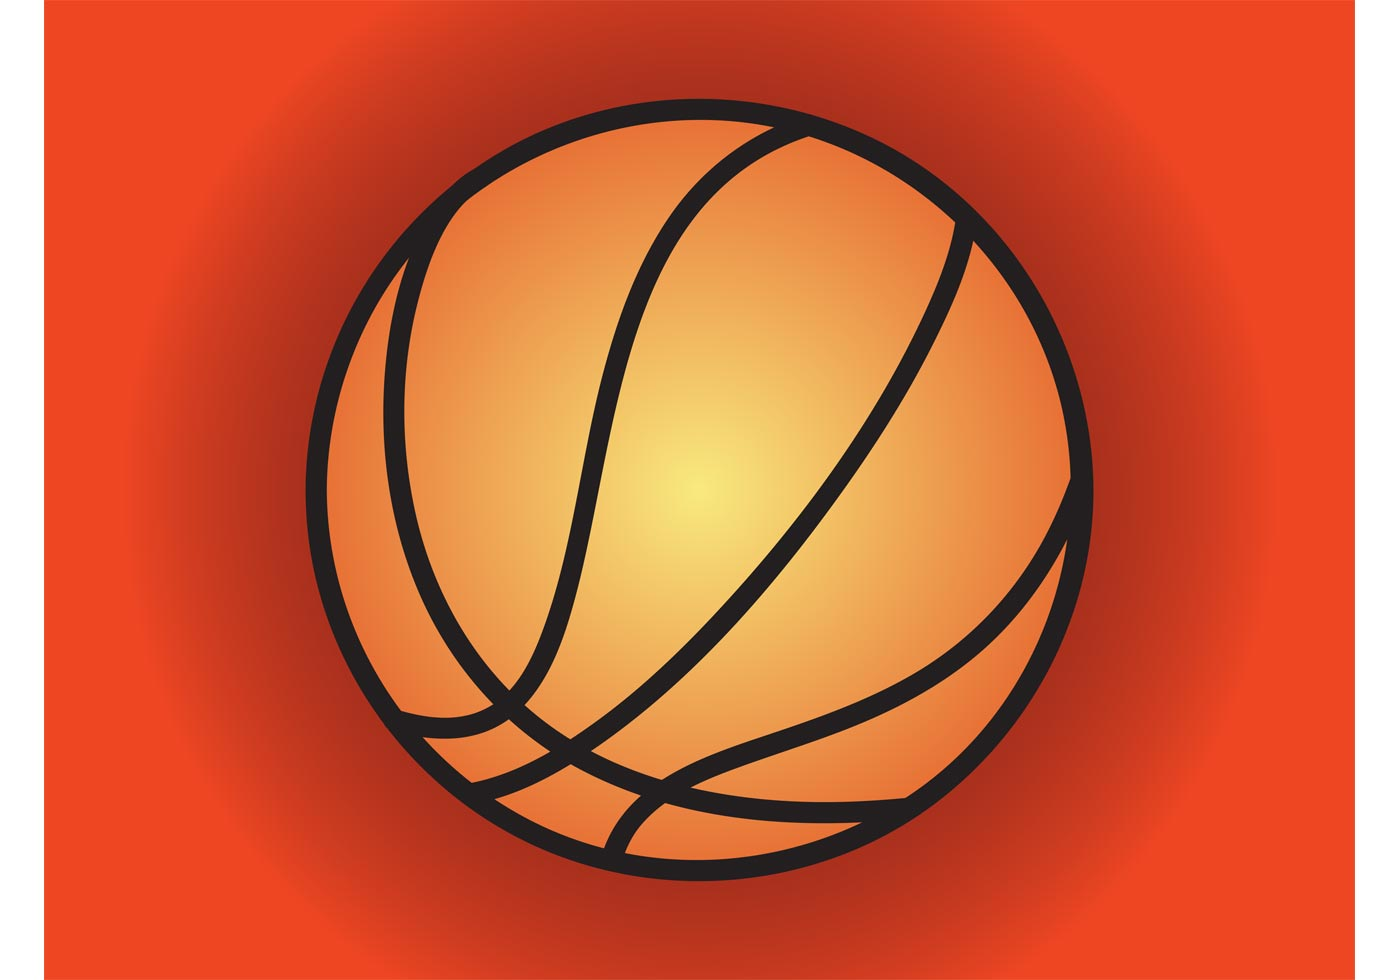 basketball icon download free vector art  stock graphics Boys Basketball Logo flaming basketball logo vector